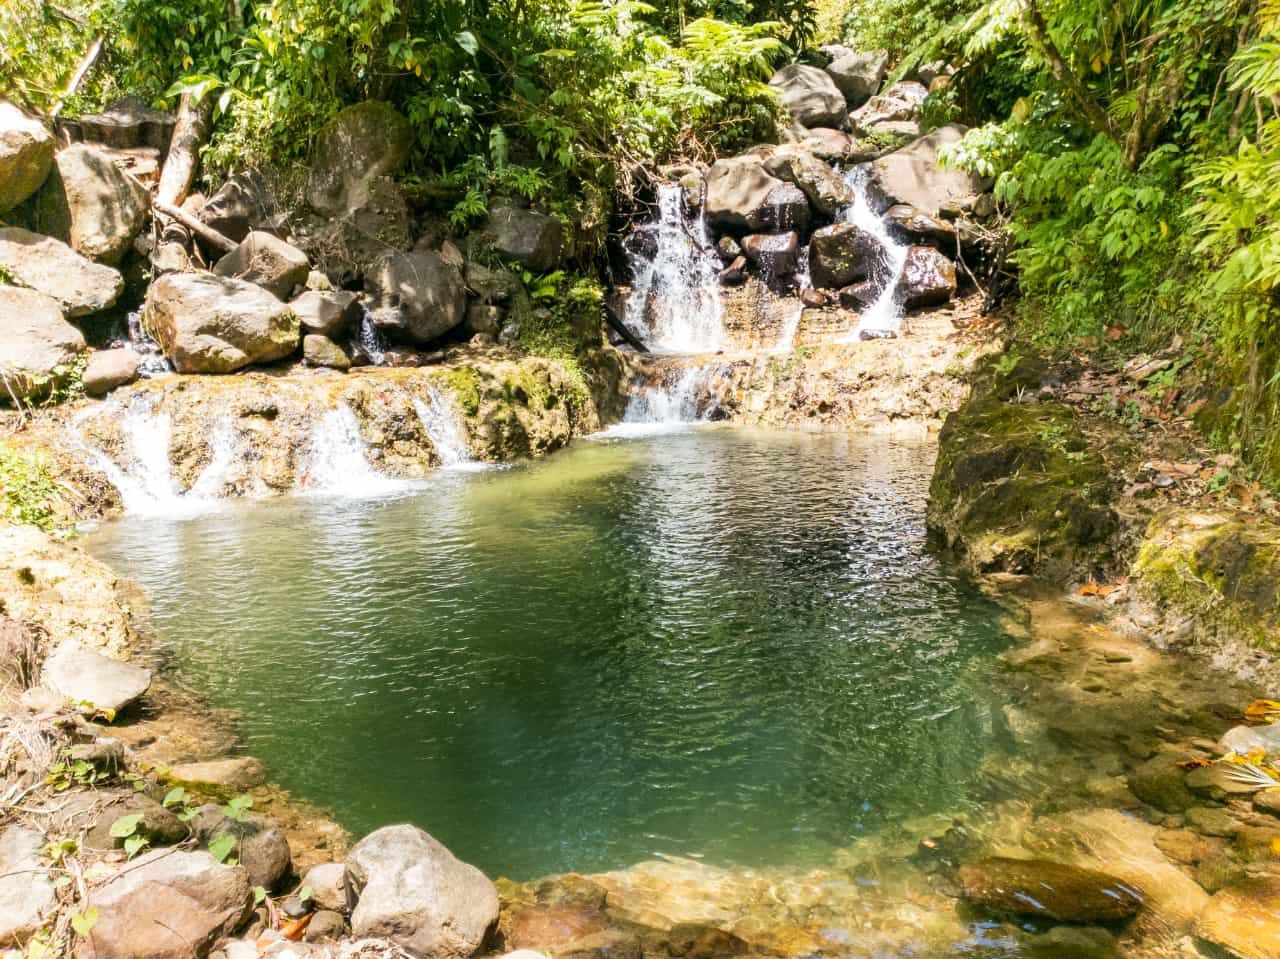 FEATURED PHOTO (with video): Laudat River Pool